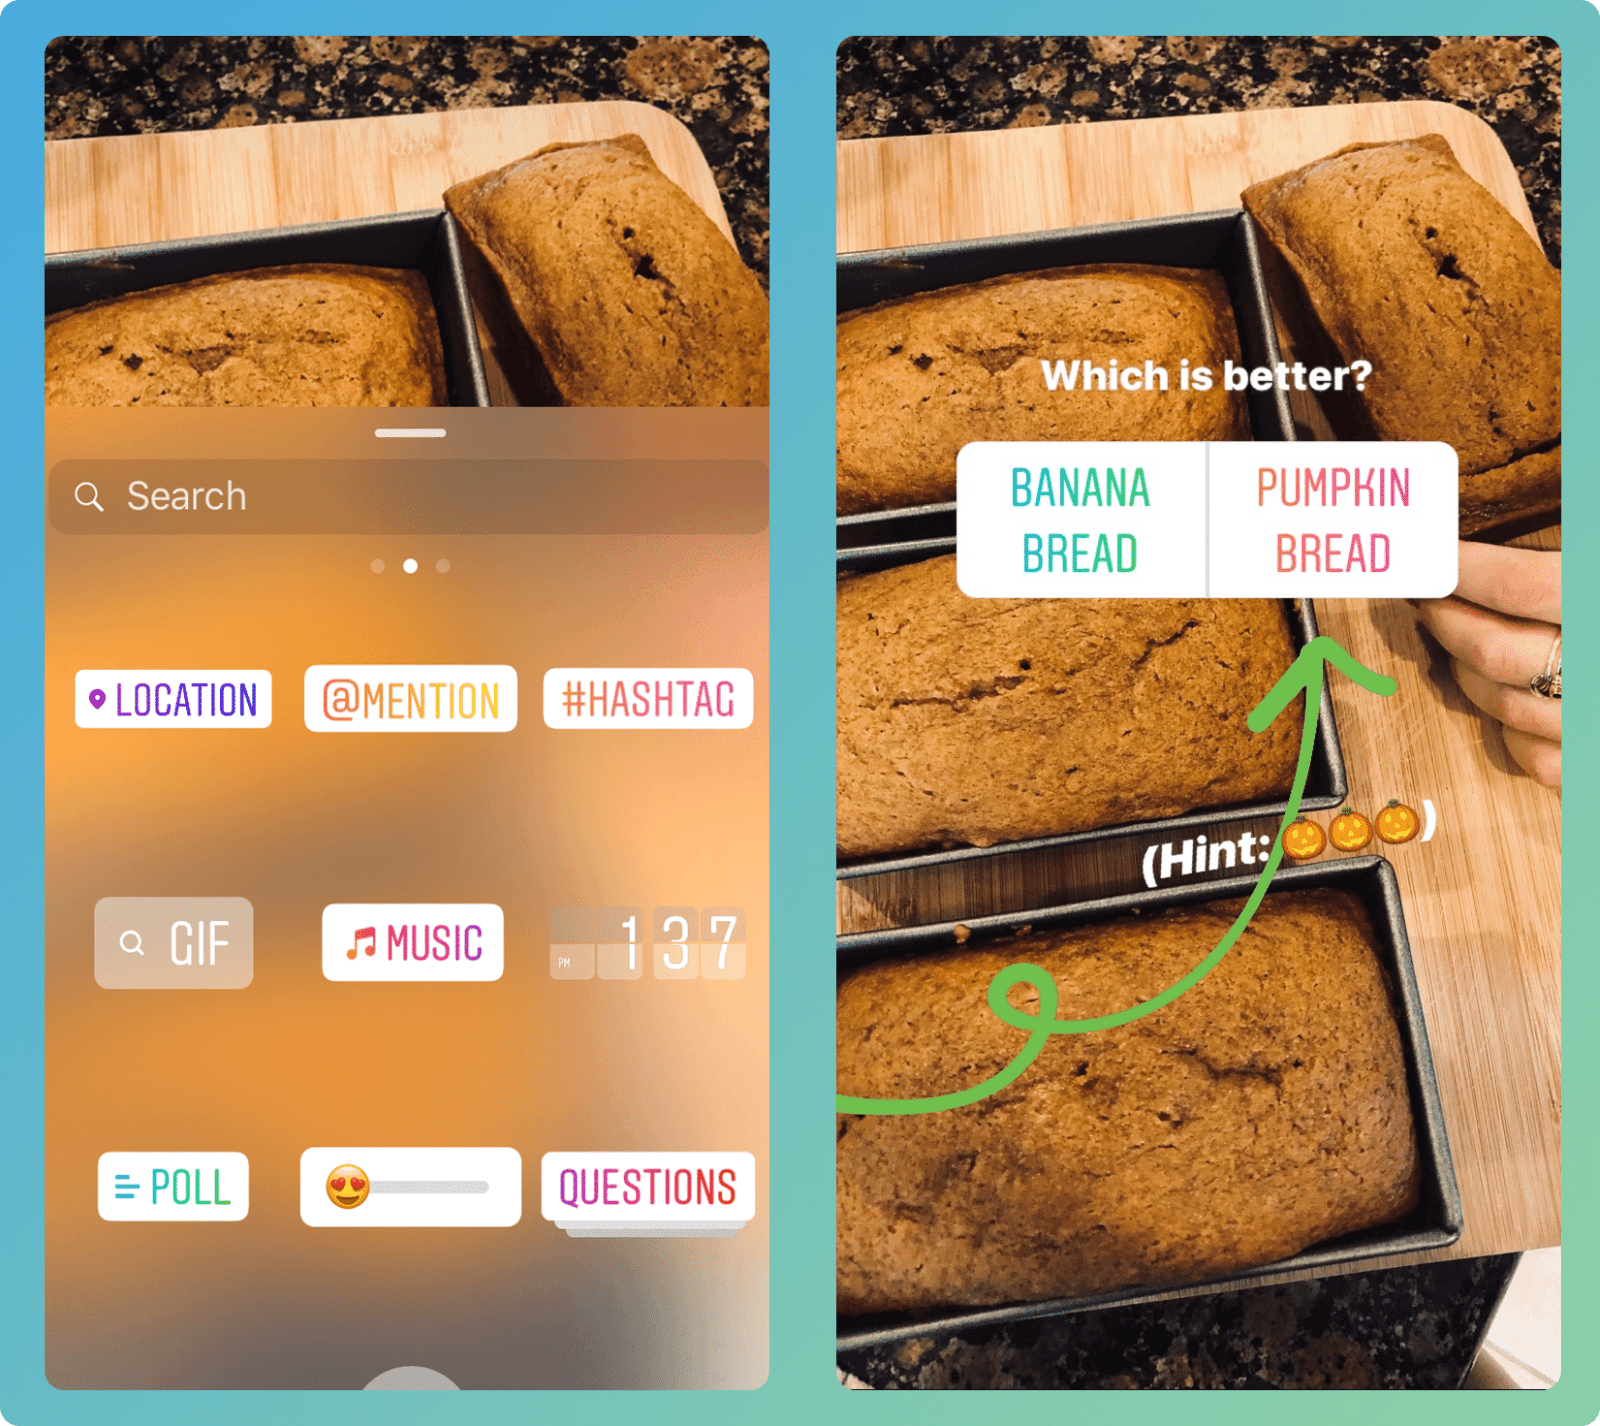 6 Must-Have Features for an Instagram Business Profile